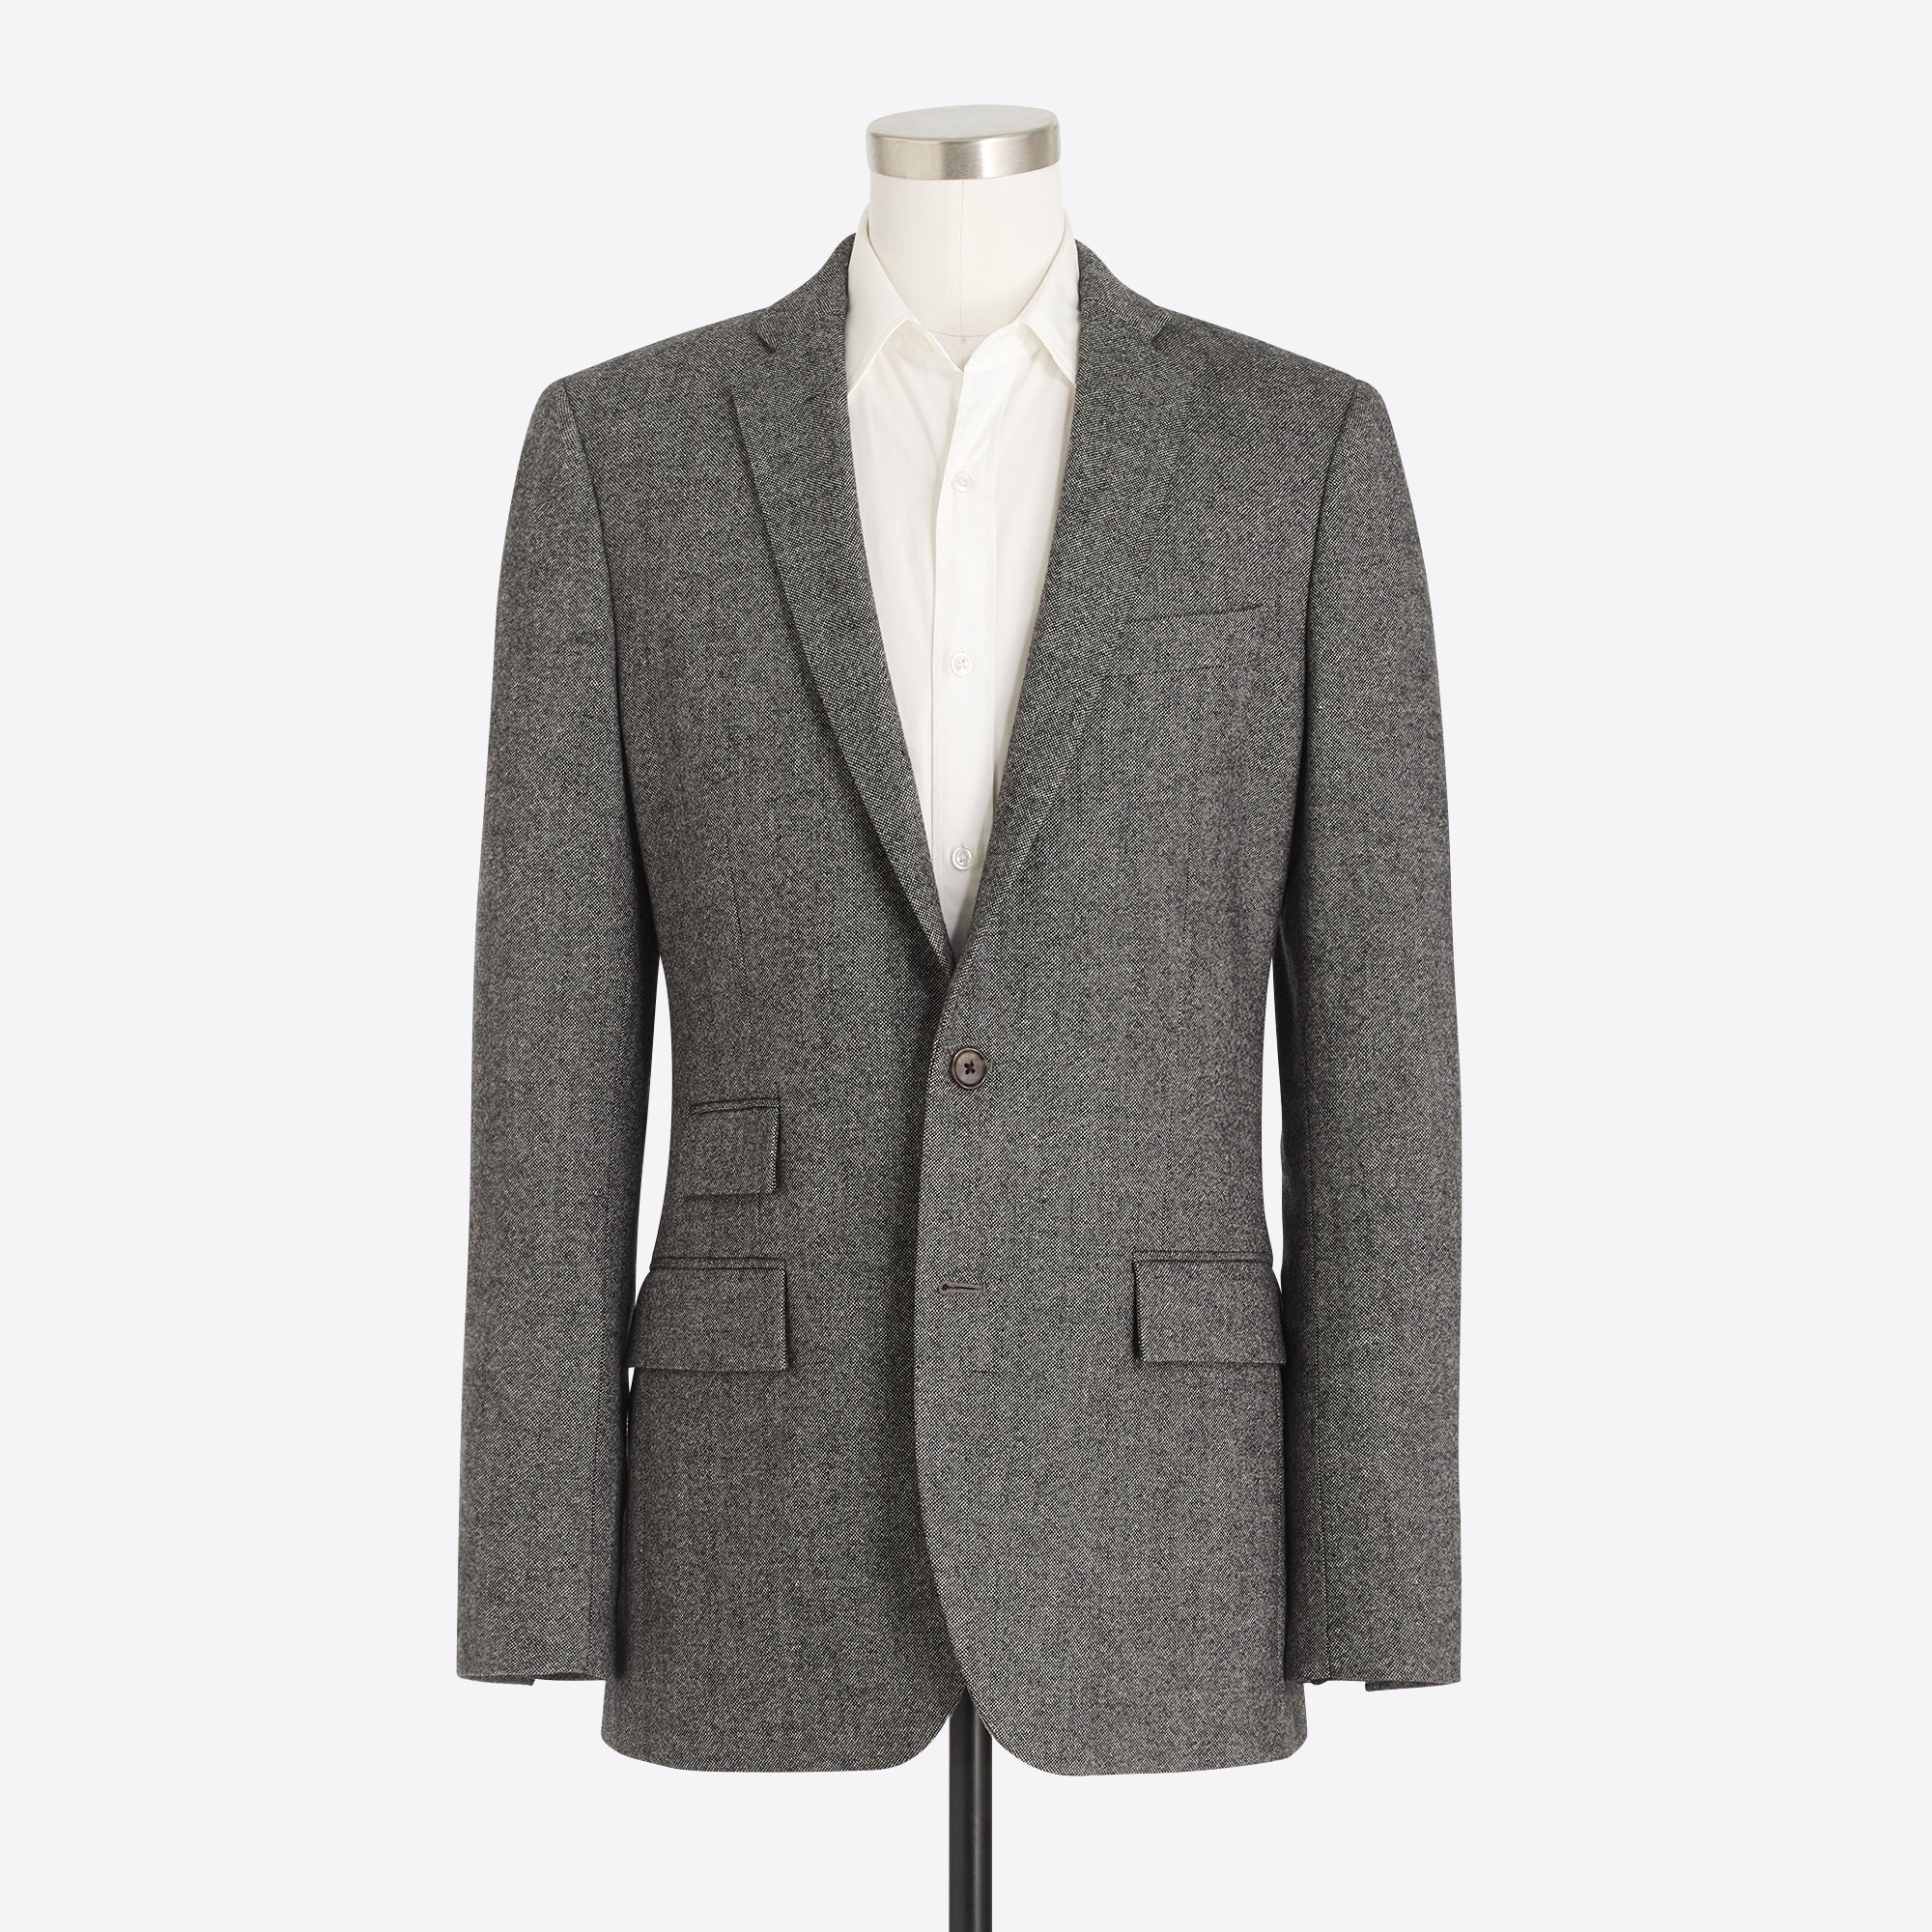 Image 2 for Slim-fit Thompson blazer in Donegal wool